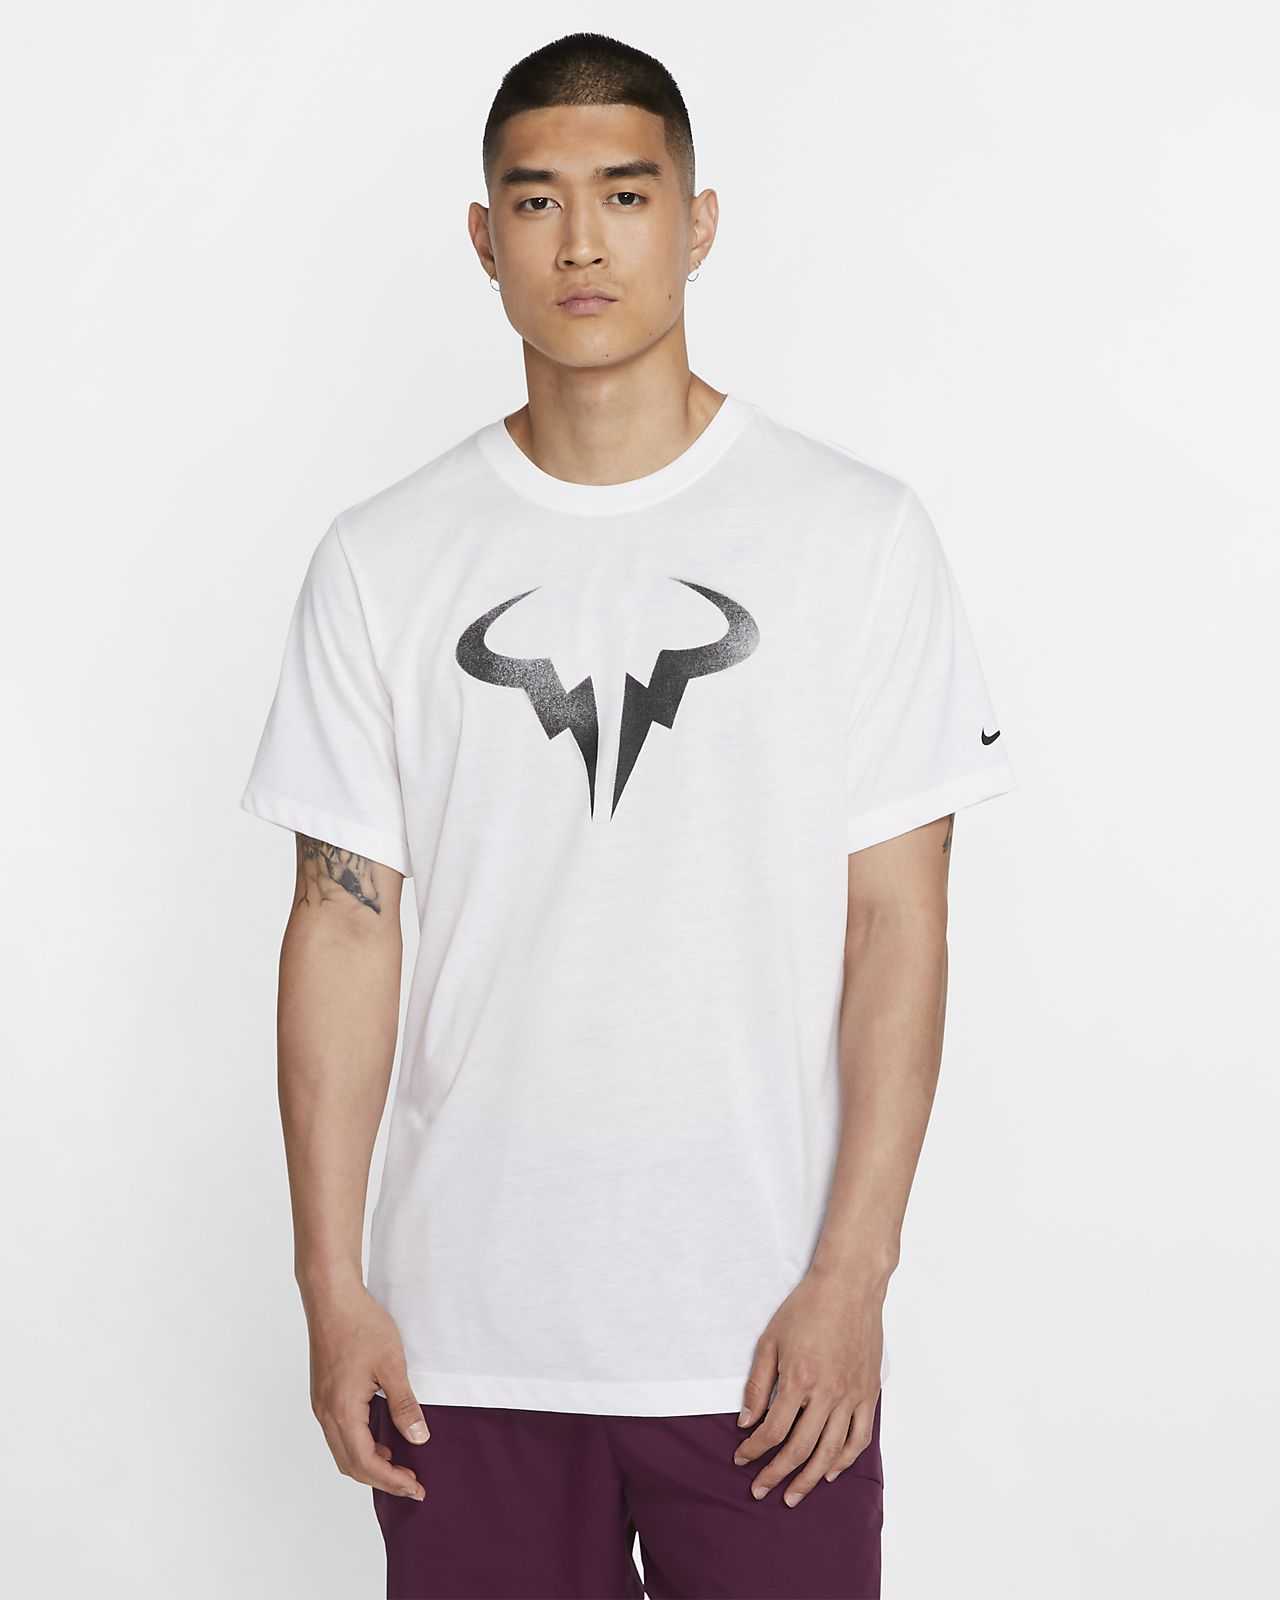 NikeCourt Dri-FIT Rafa Men's Graphic Tennis T-Shirt